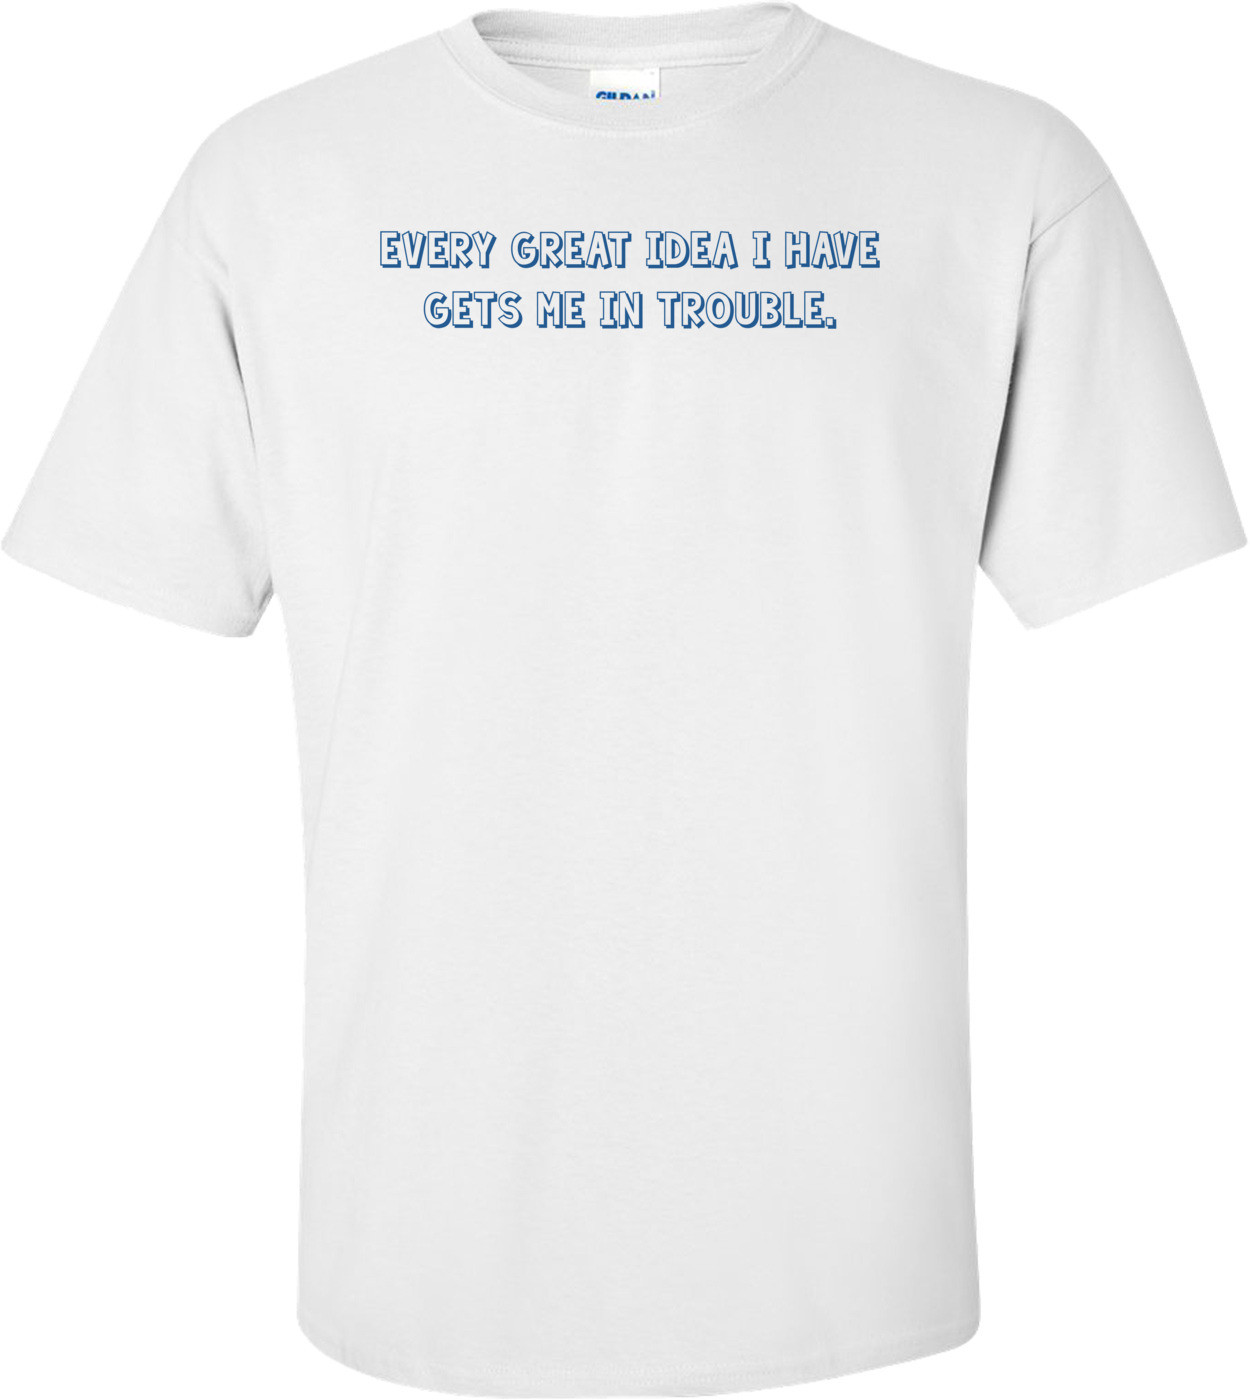 Every great idea I have gets me in trouble. Shirt